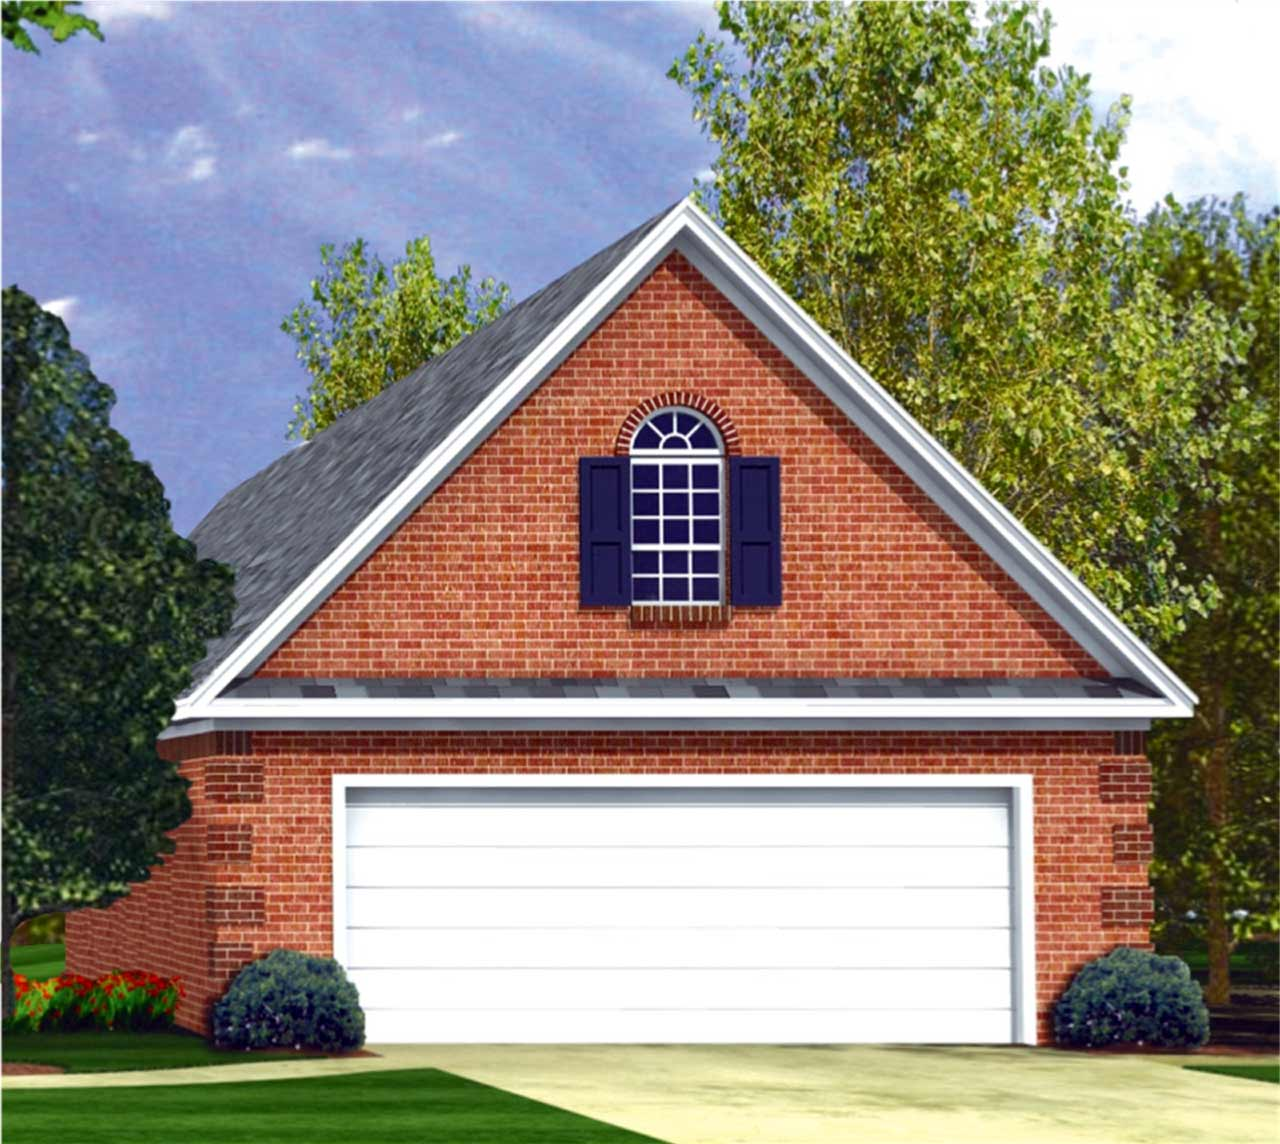 Style House Plans 2-101